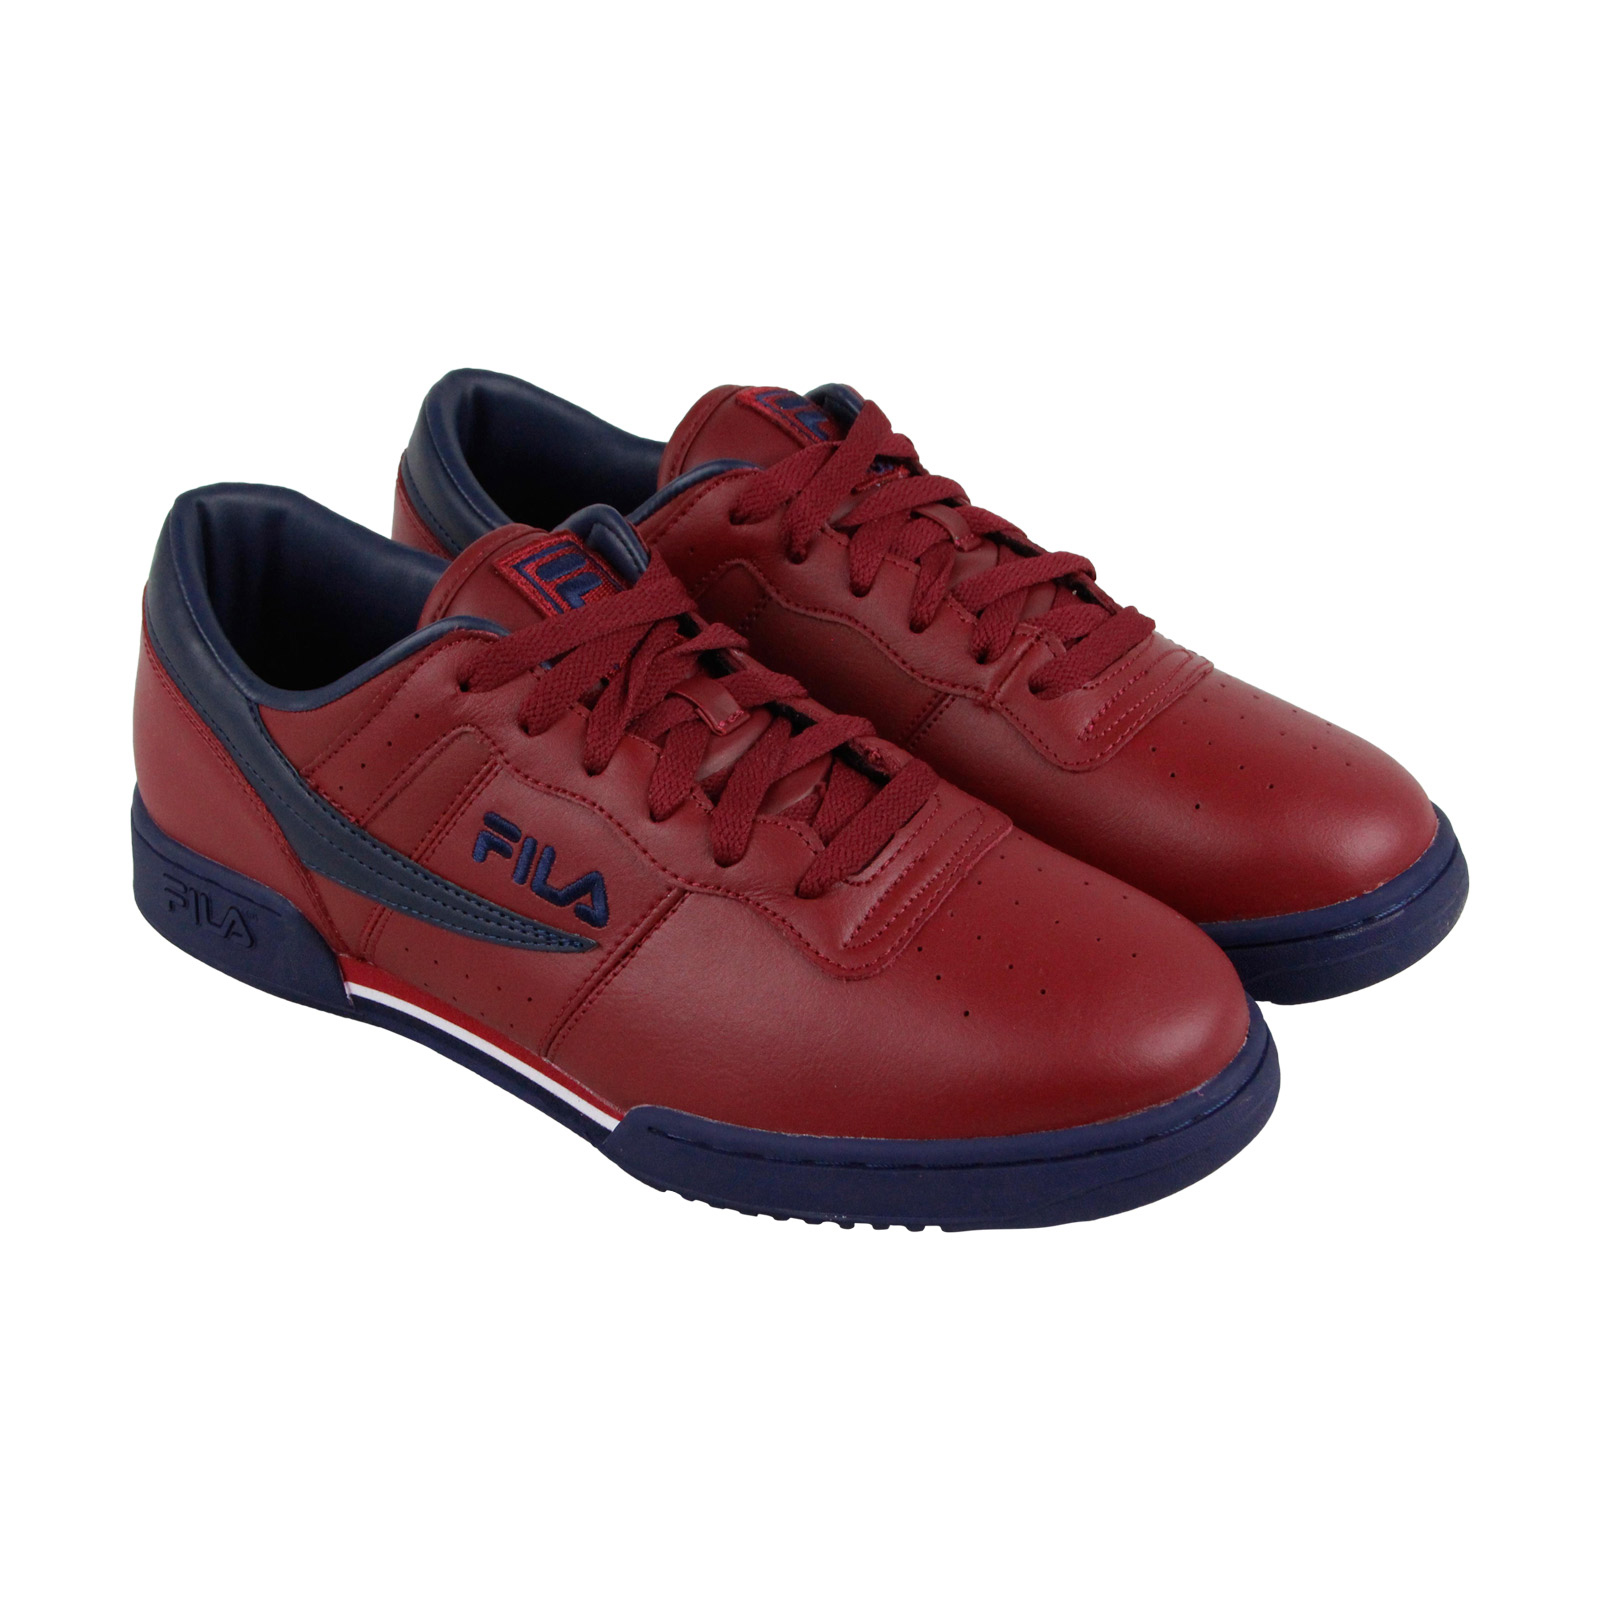 Fila Original Fitness Mens Red Leather Lace Up Sneakers Shoes by Fila